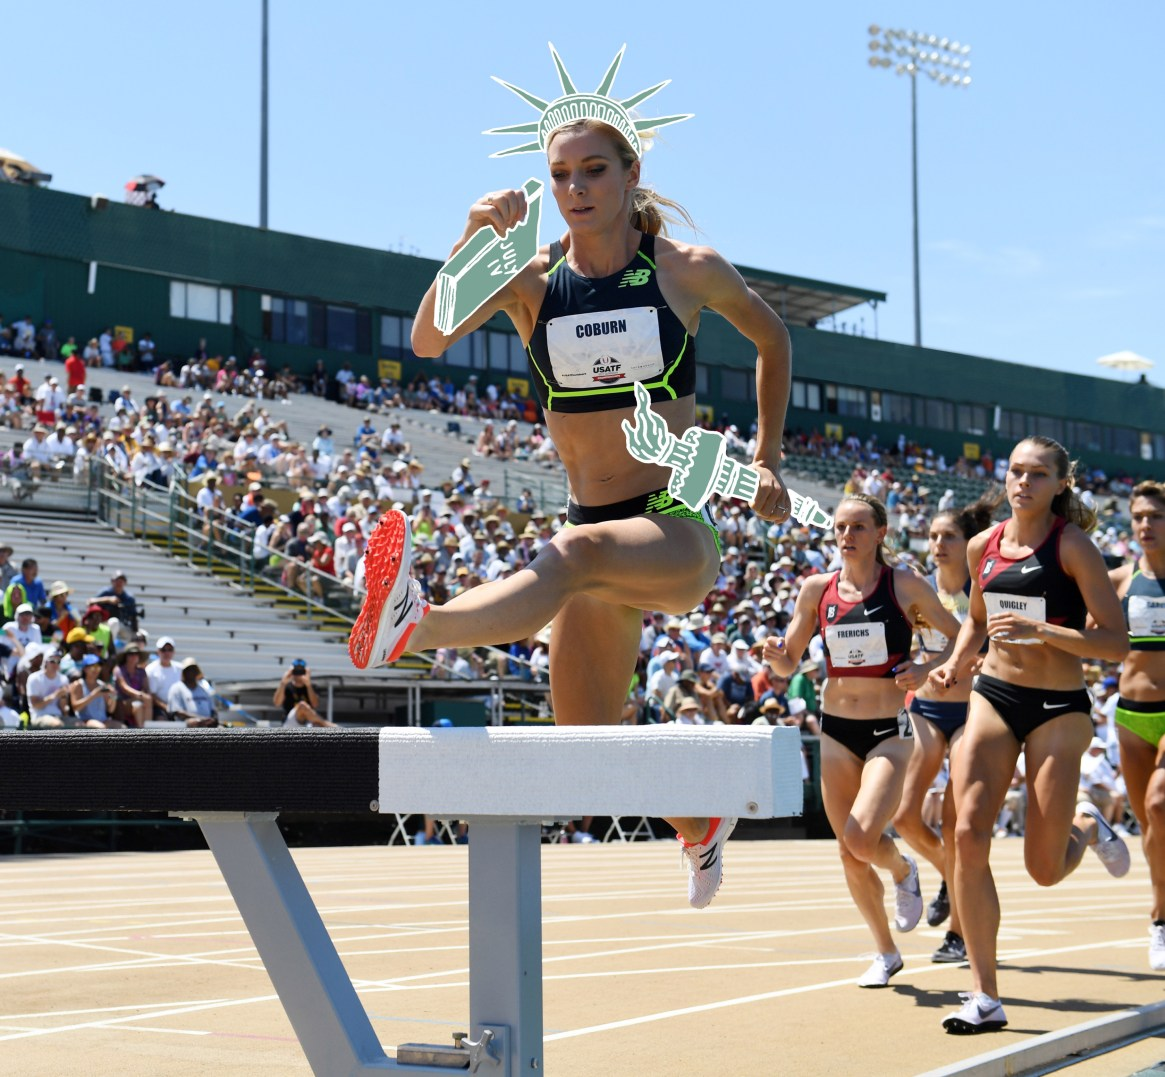 The History of the United States According to the Women's Steeplechase